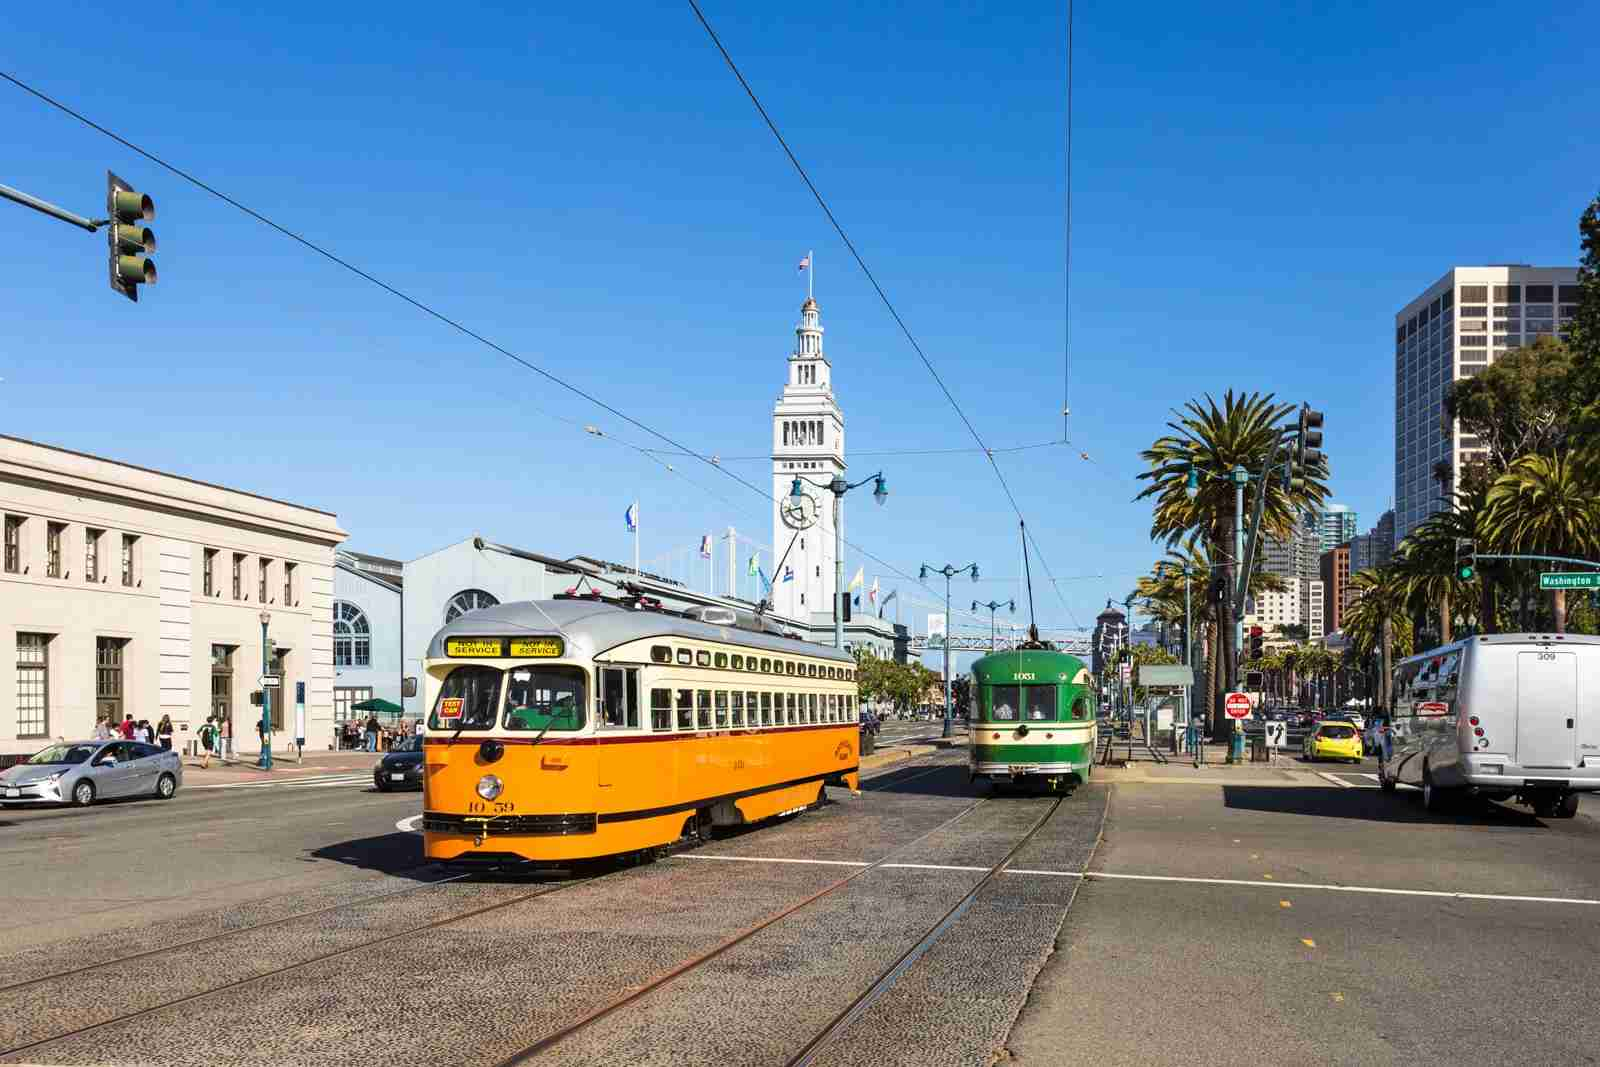 The tramway on the Embarcadero along San Francisco waterfront in California, USA. The clock tower in the background in the historic ferry terminal building. (Photo by Didier Marti / Getty Images)